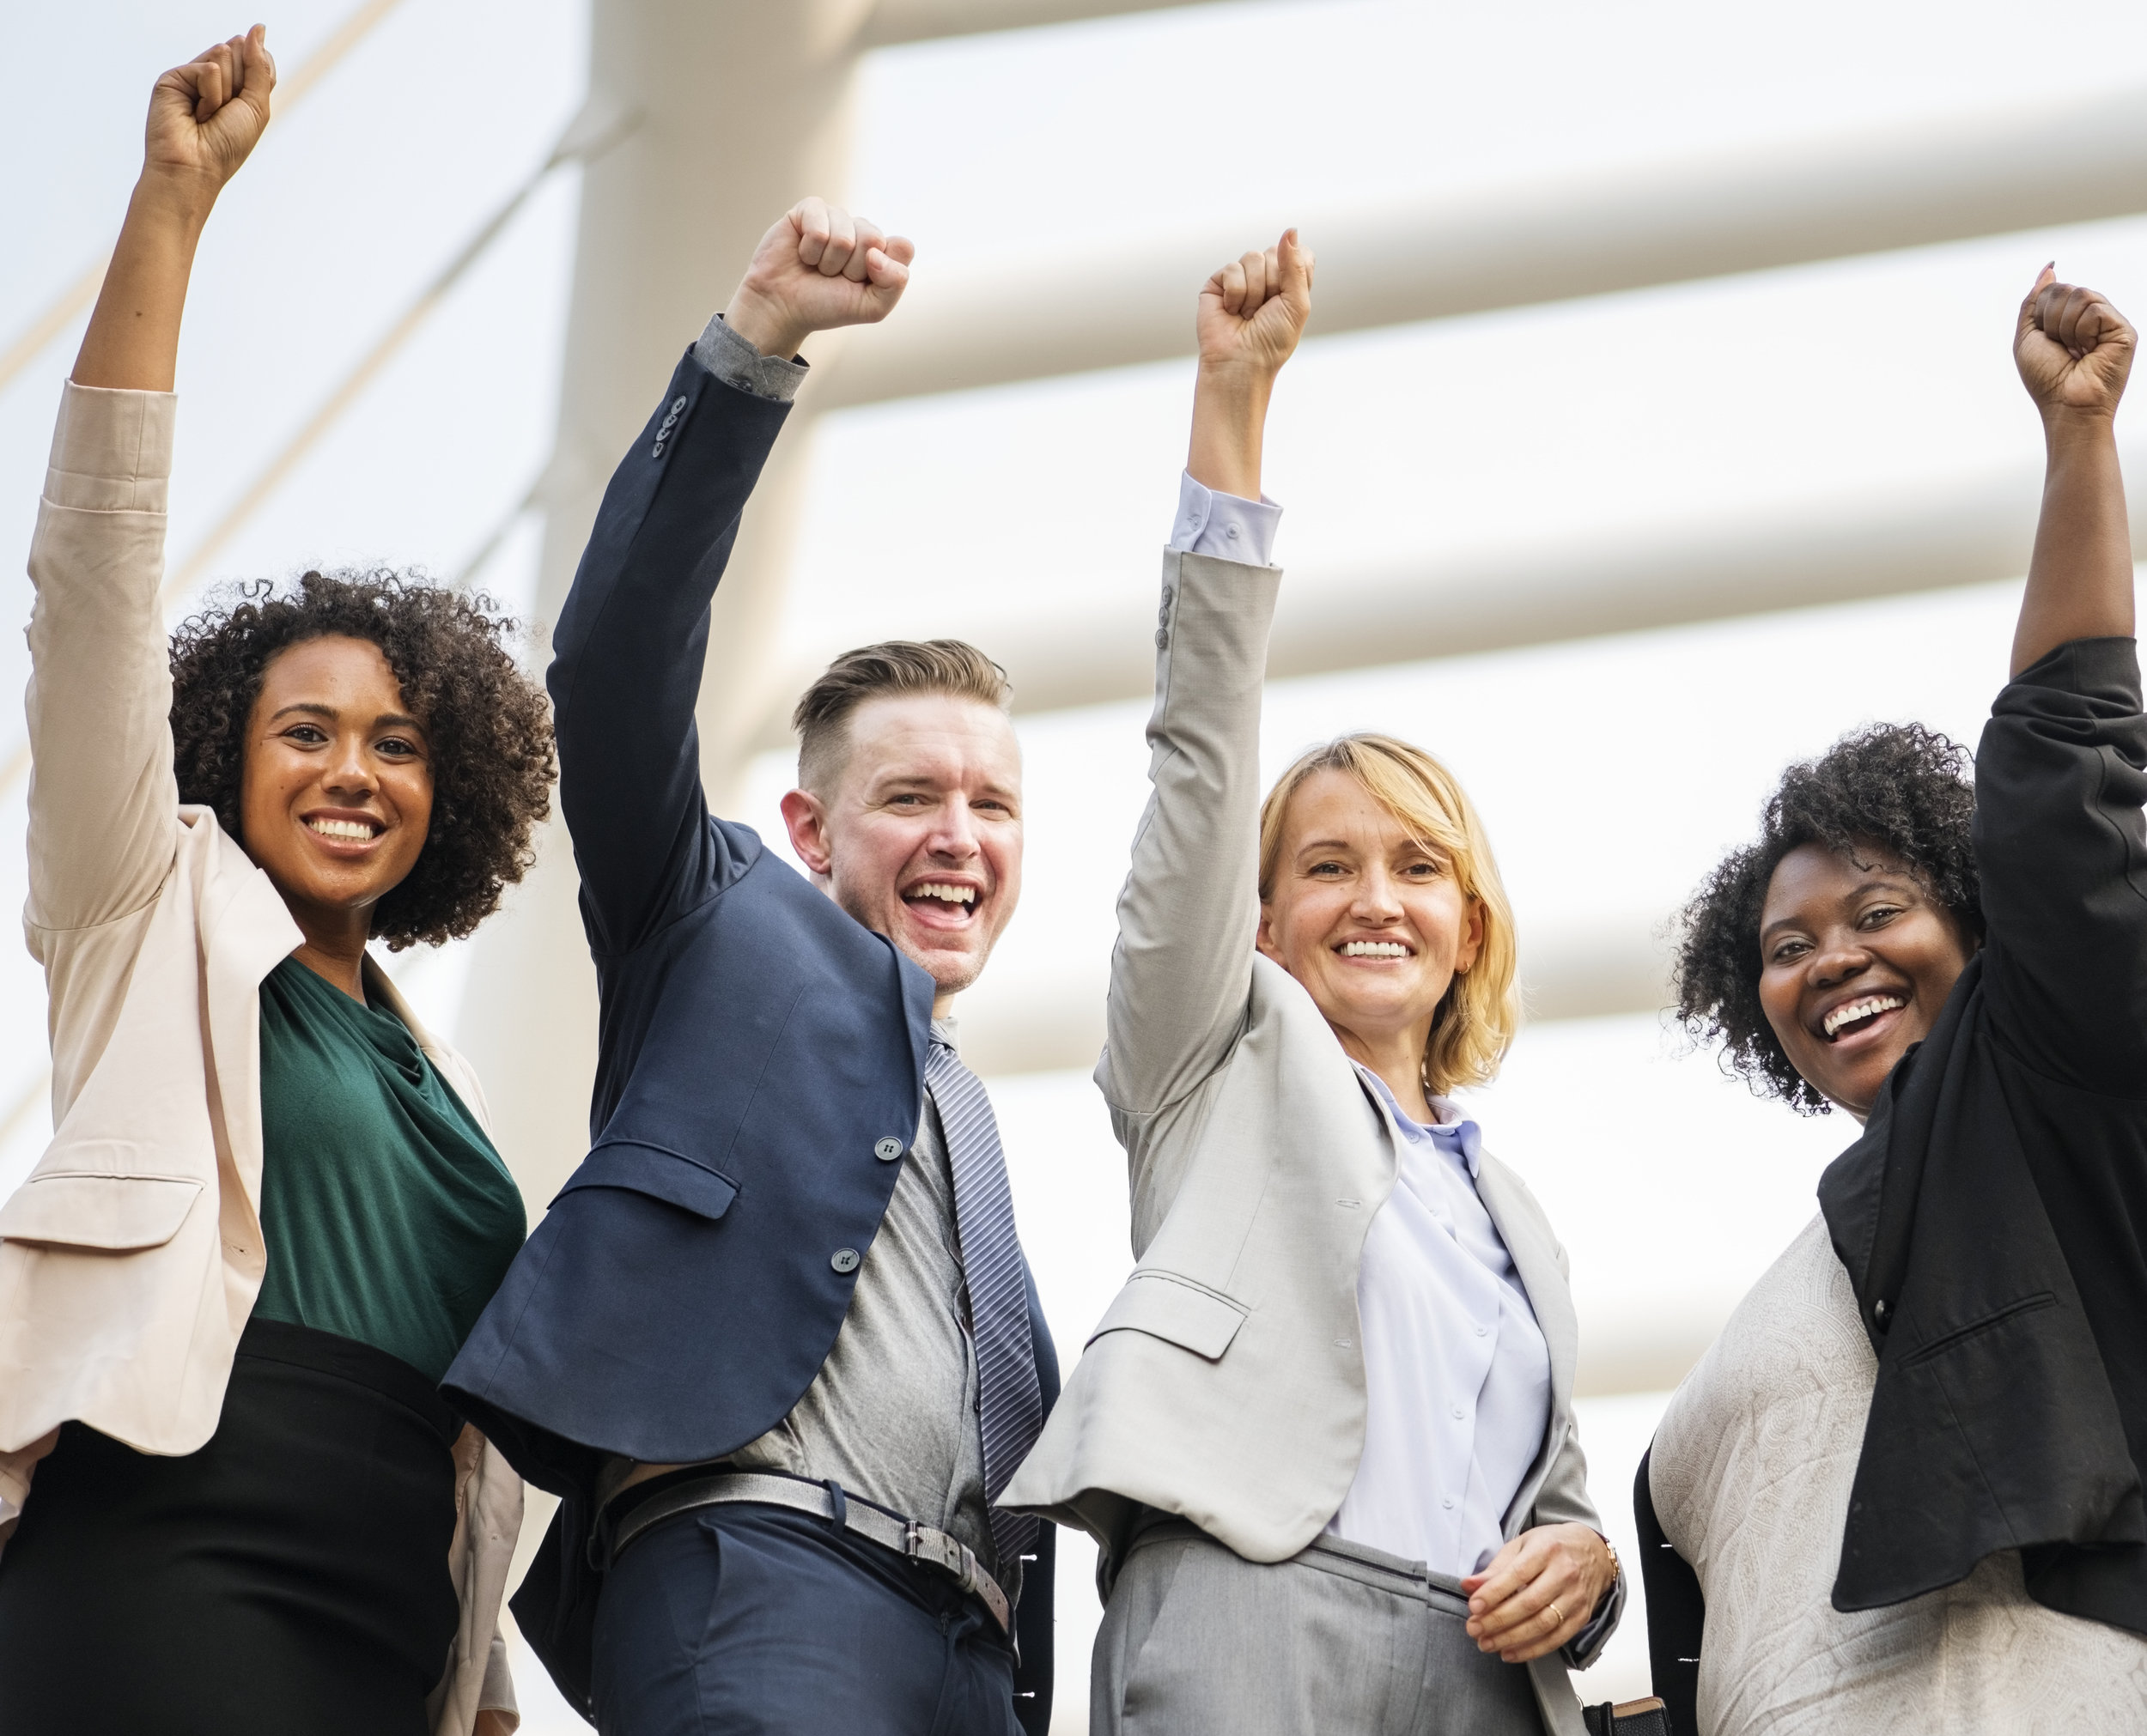 Creating Cultures That Win - Learn the wholistic view on on building intentional culture that touches the bottom lines of your business performance.